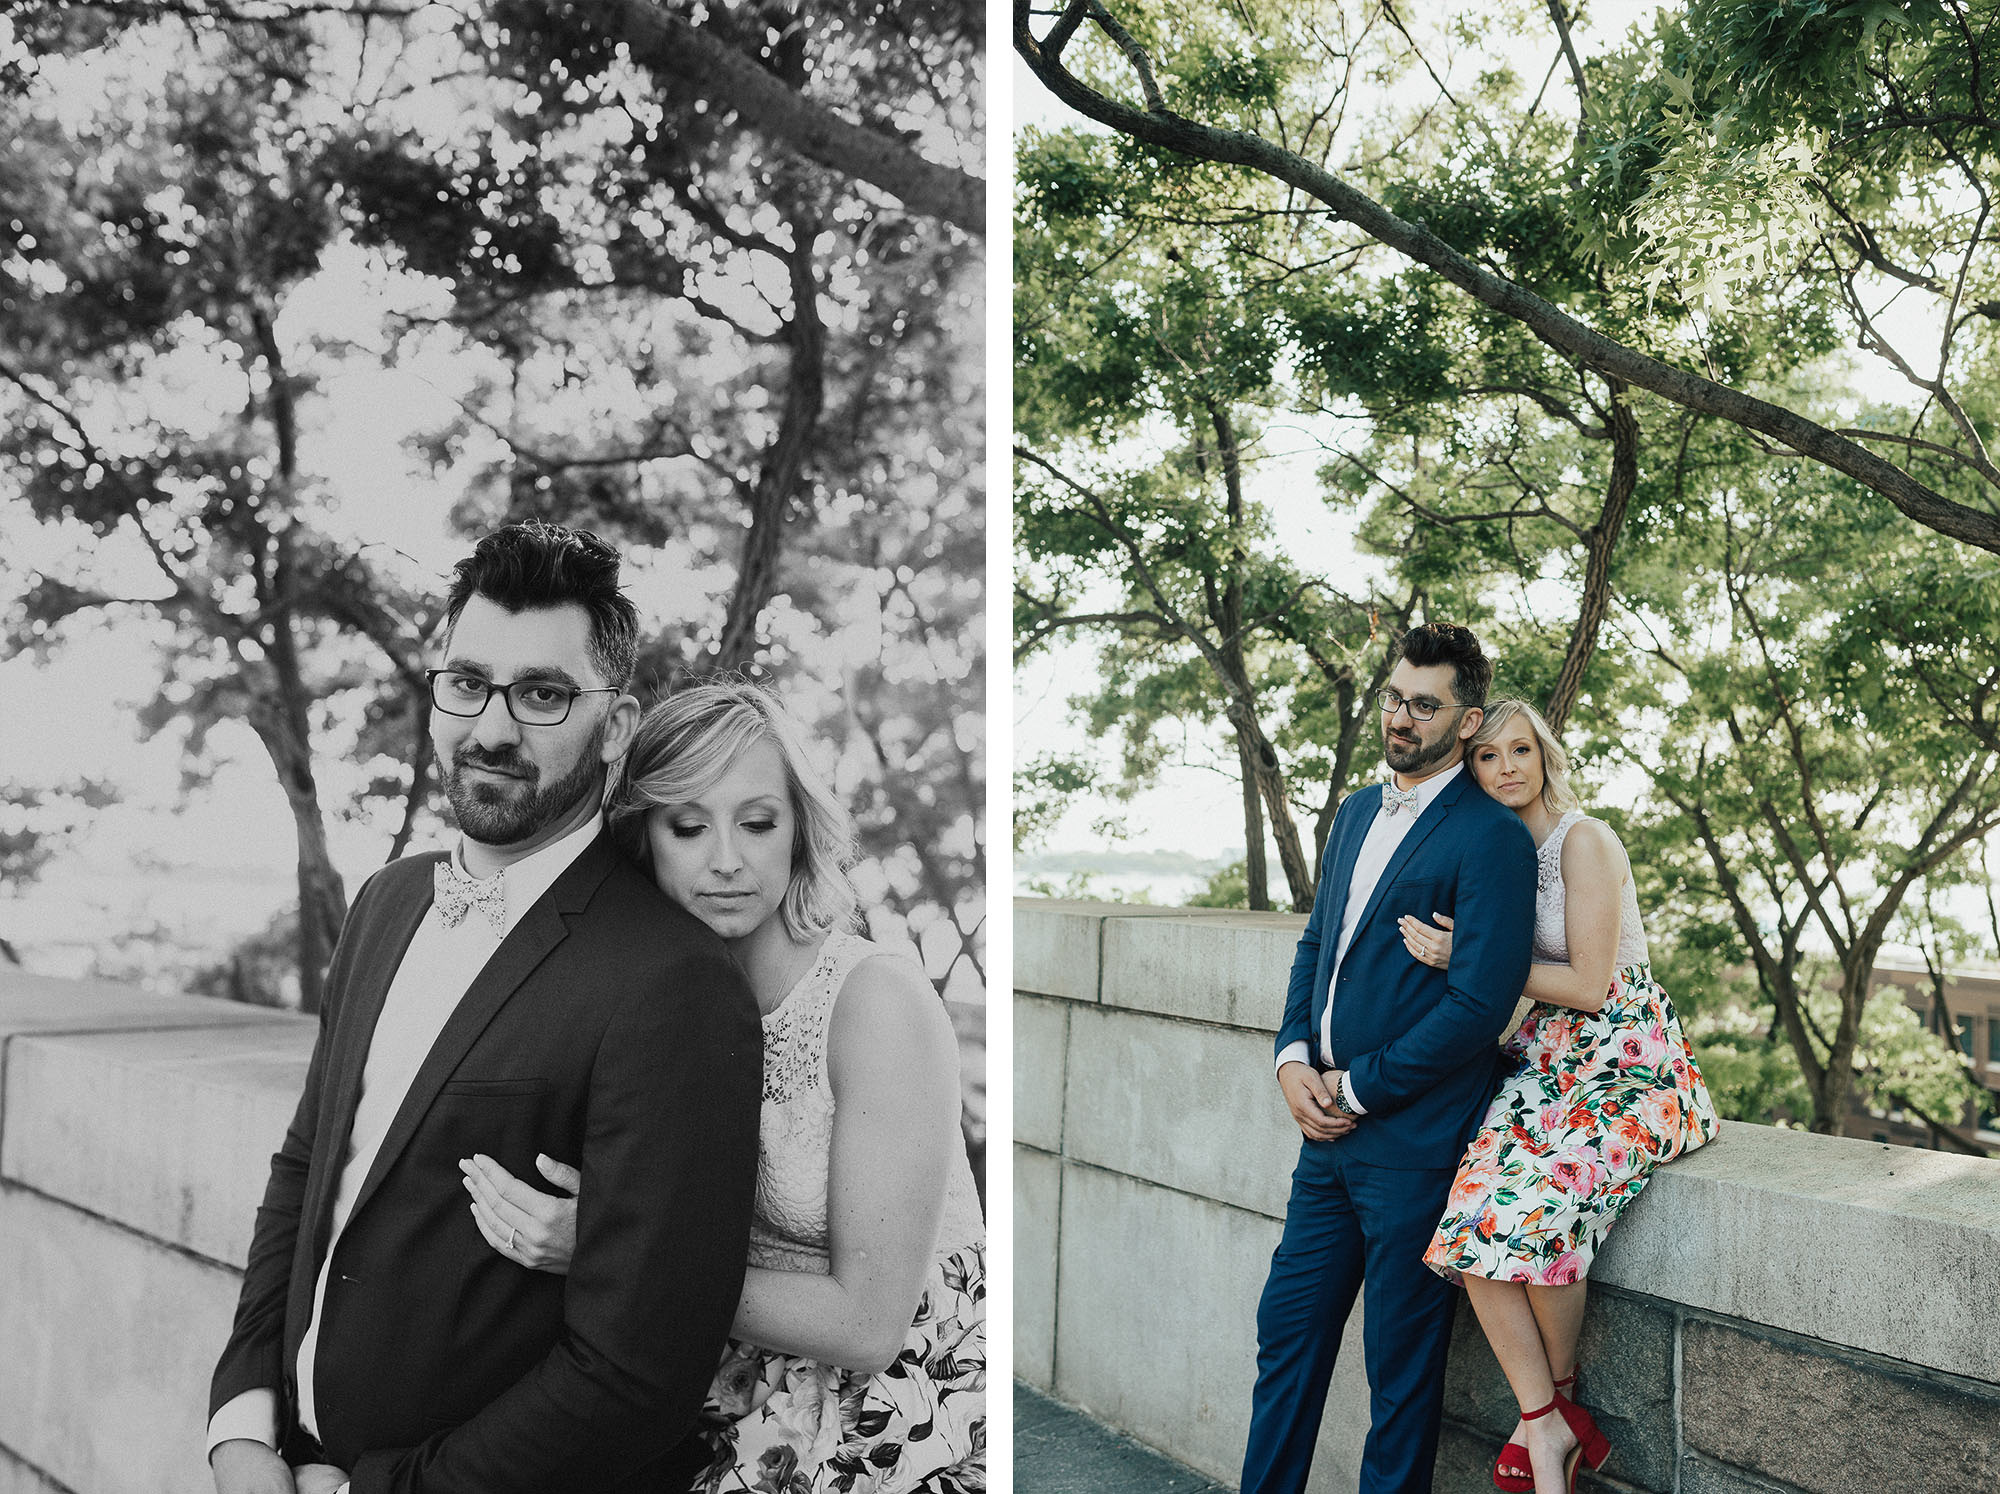 brooklyn_nyc_engagement_photography-11-of-18.jpg